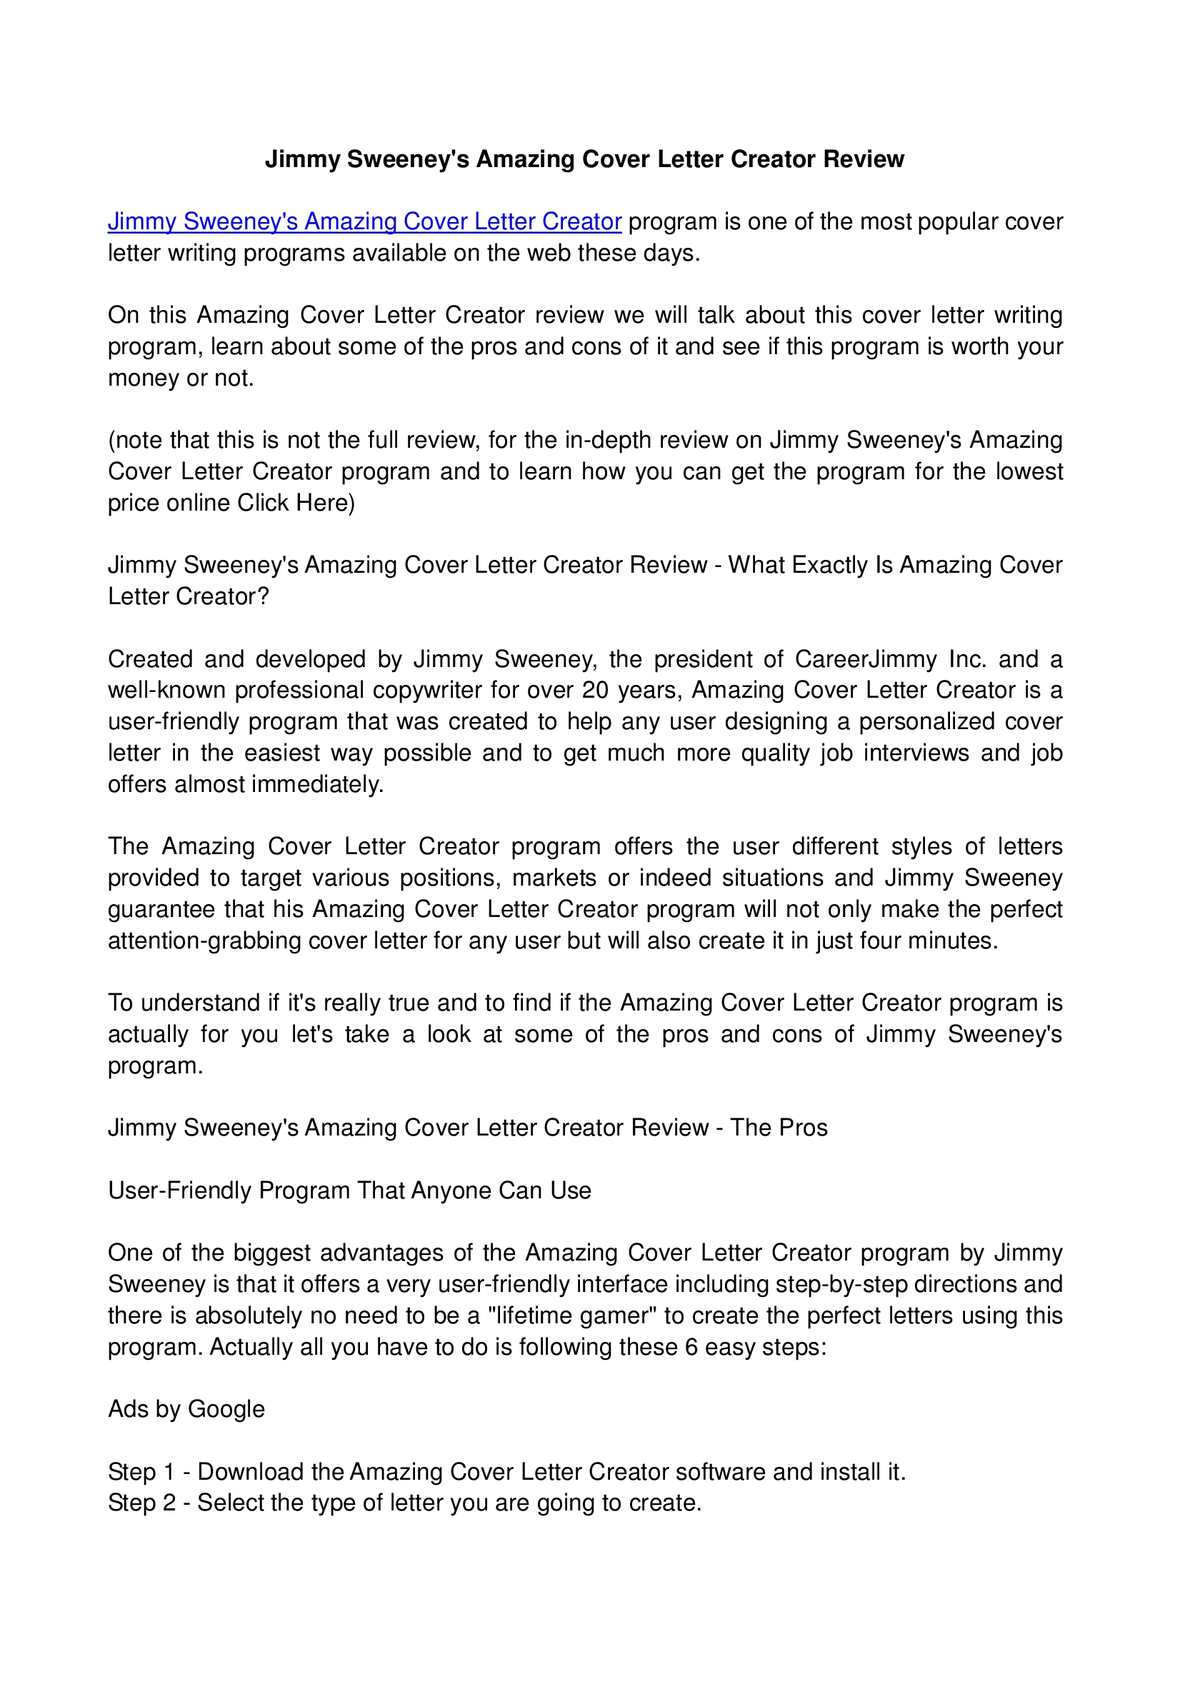 calamo jimmy sweeneys amazing cover letter creator review. Resume Example. Resume CV Cover Letter